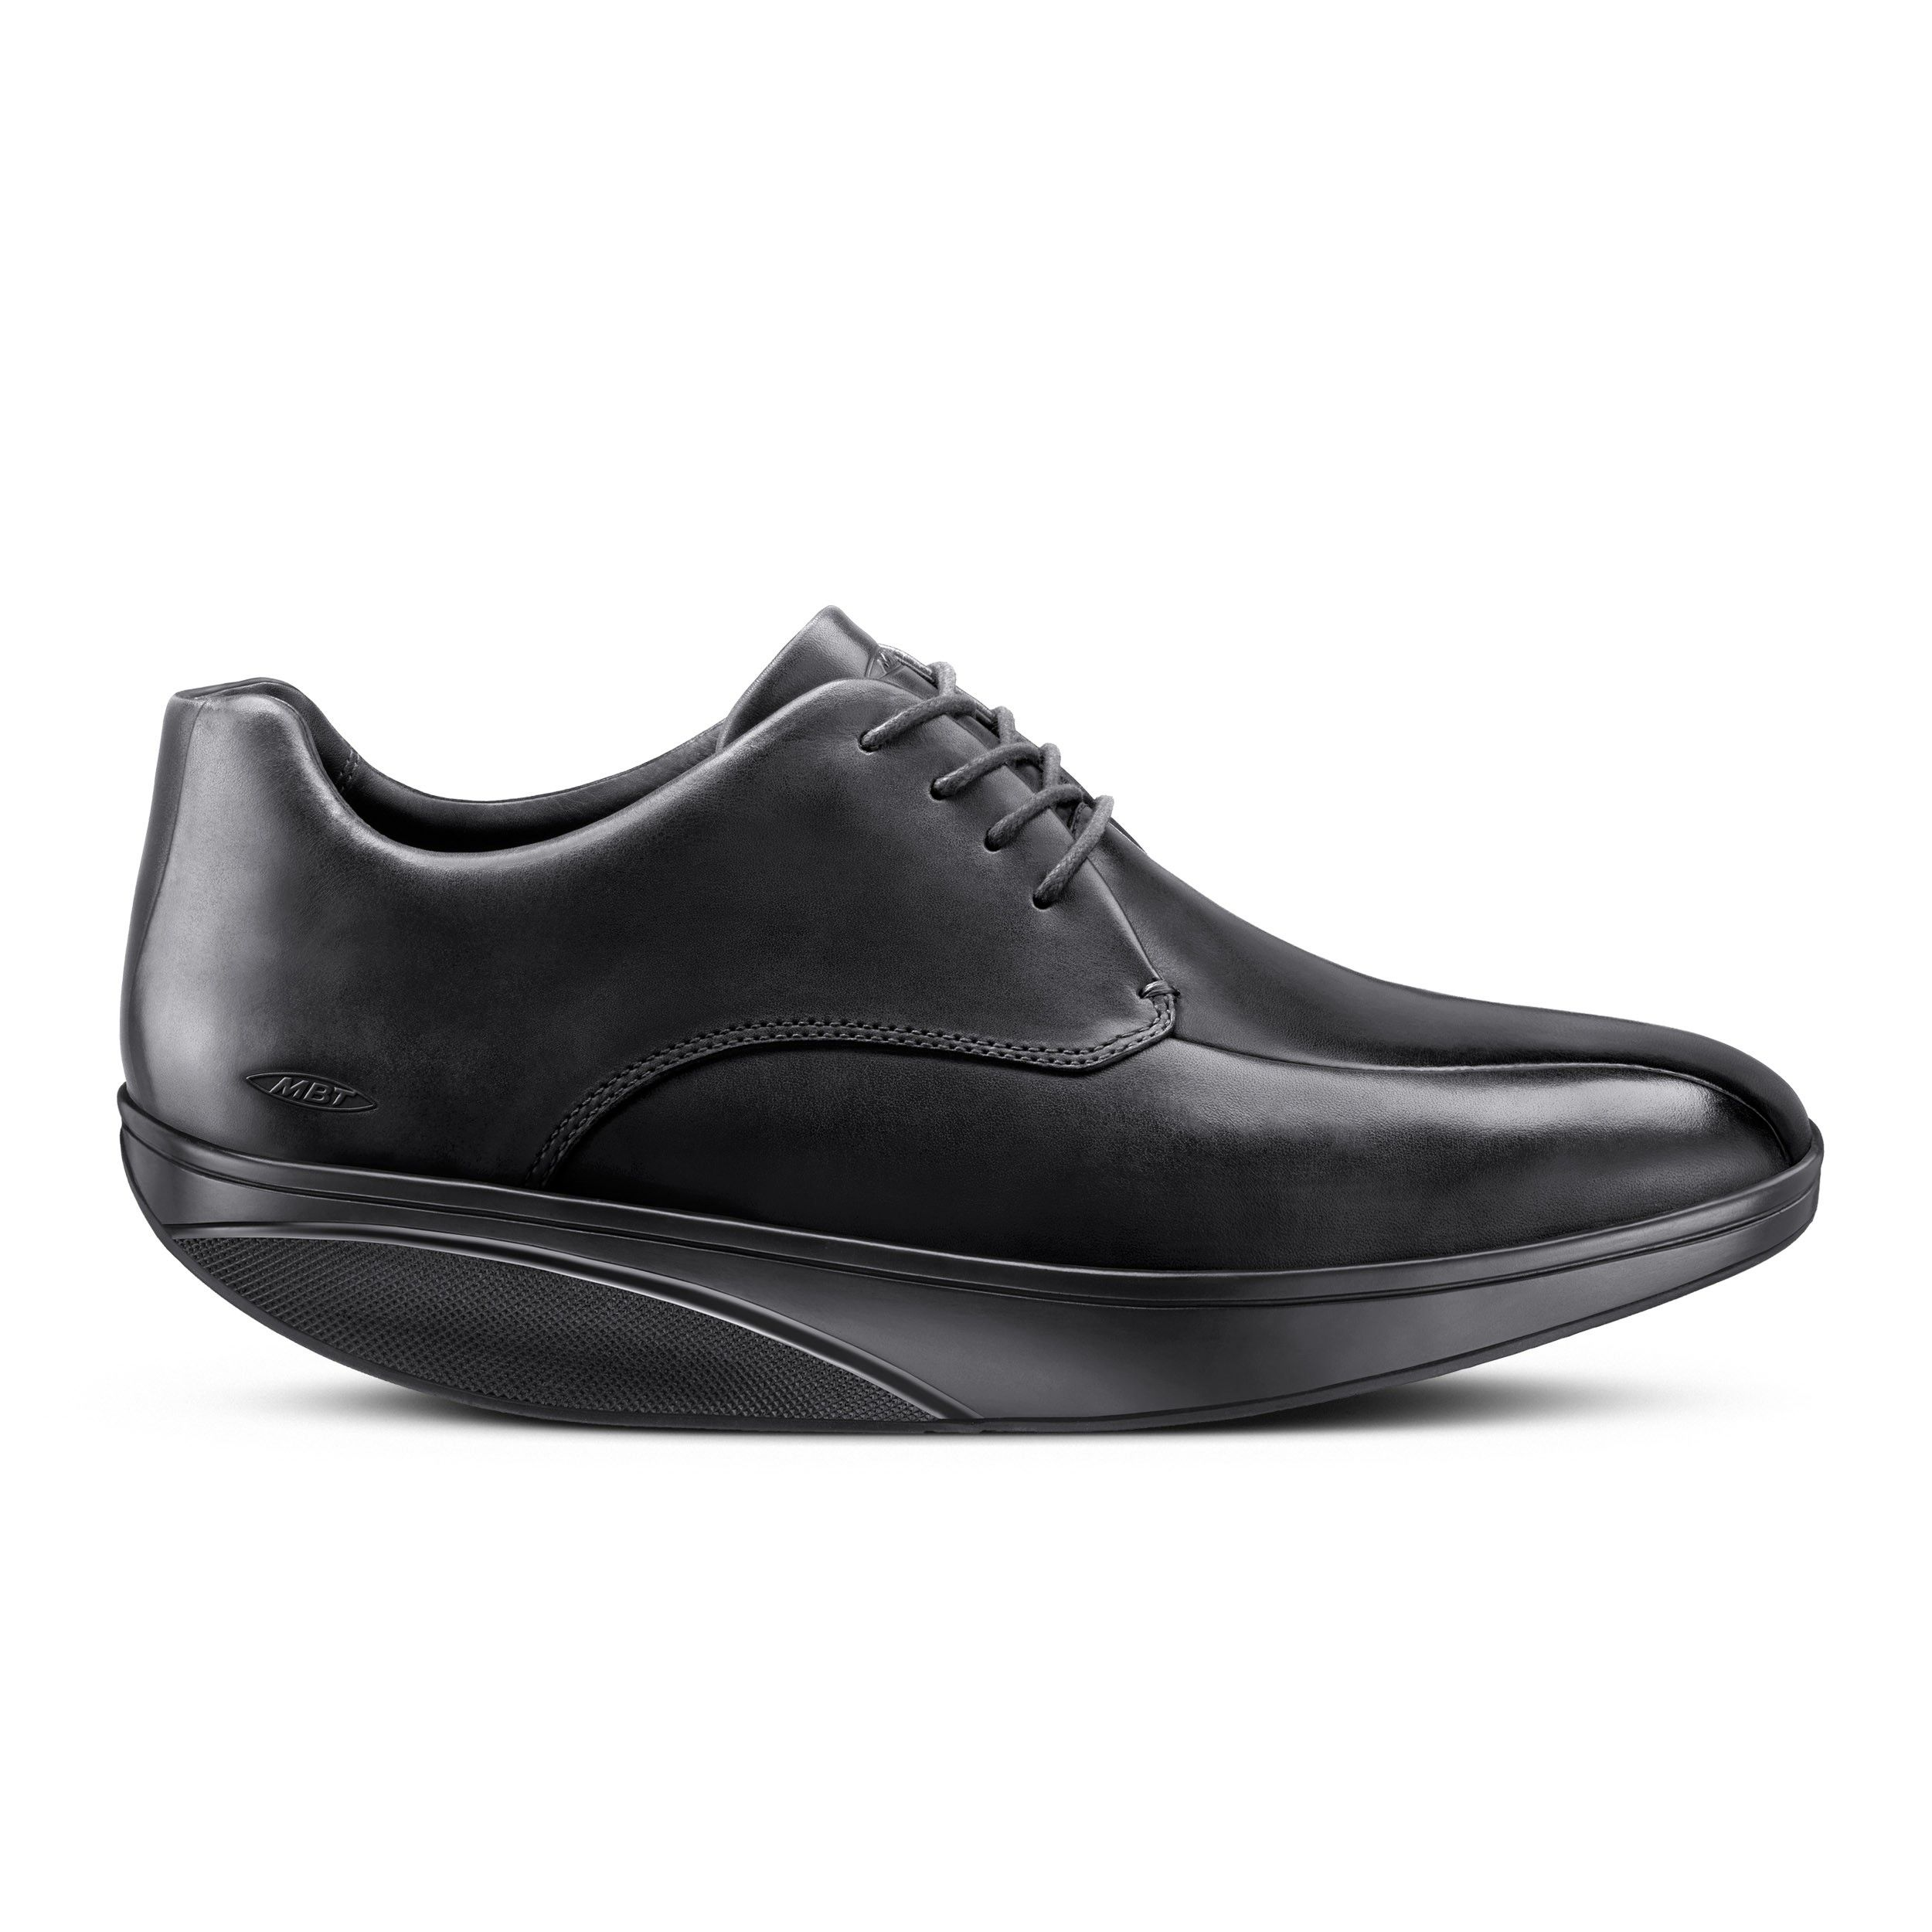 931333fb2558 Bosi Black at yodgee.com.au MBTs are shoes made for your body and ...